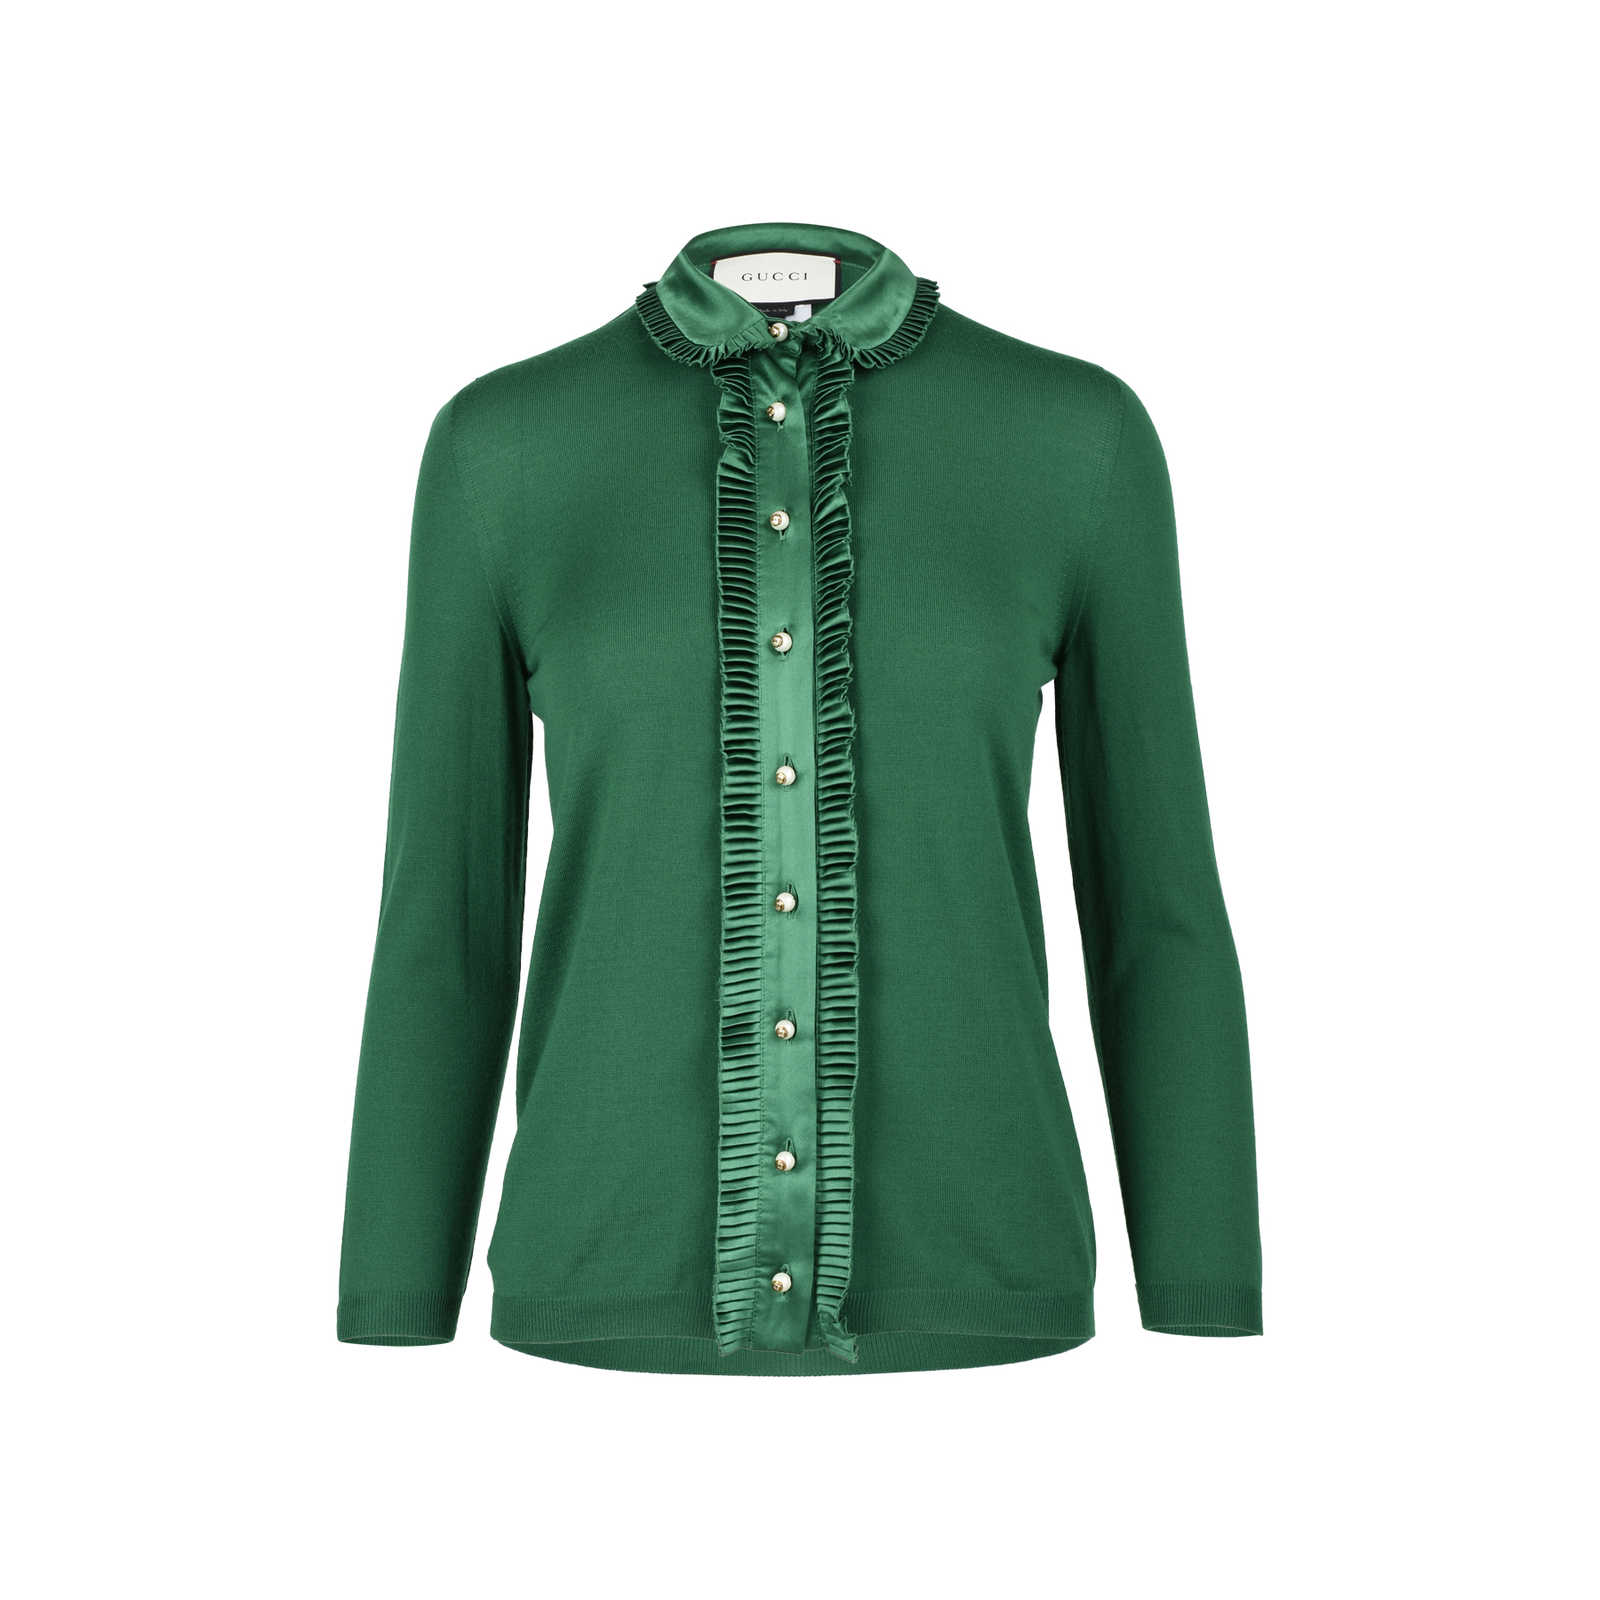 29807937e14 Authentic Second Hand Gucci Ruffled Knit Cardigan (PSS-051-00351) -  Thumbnail ...